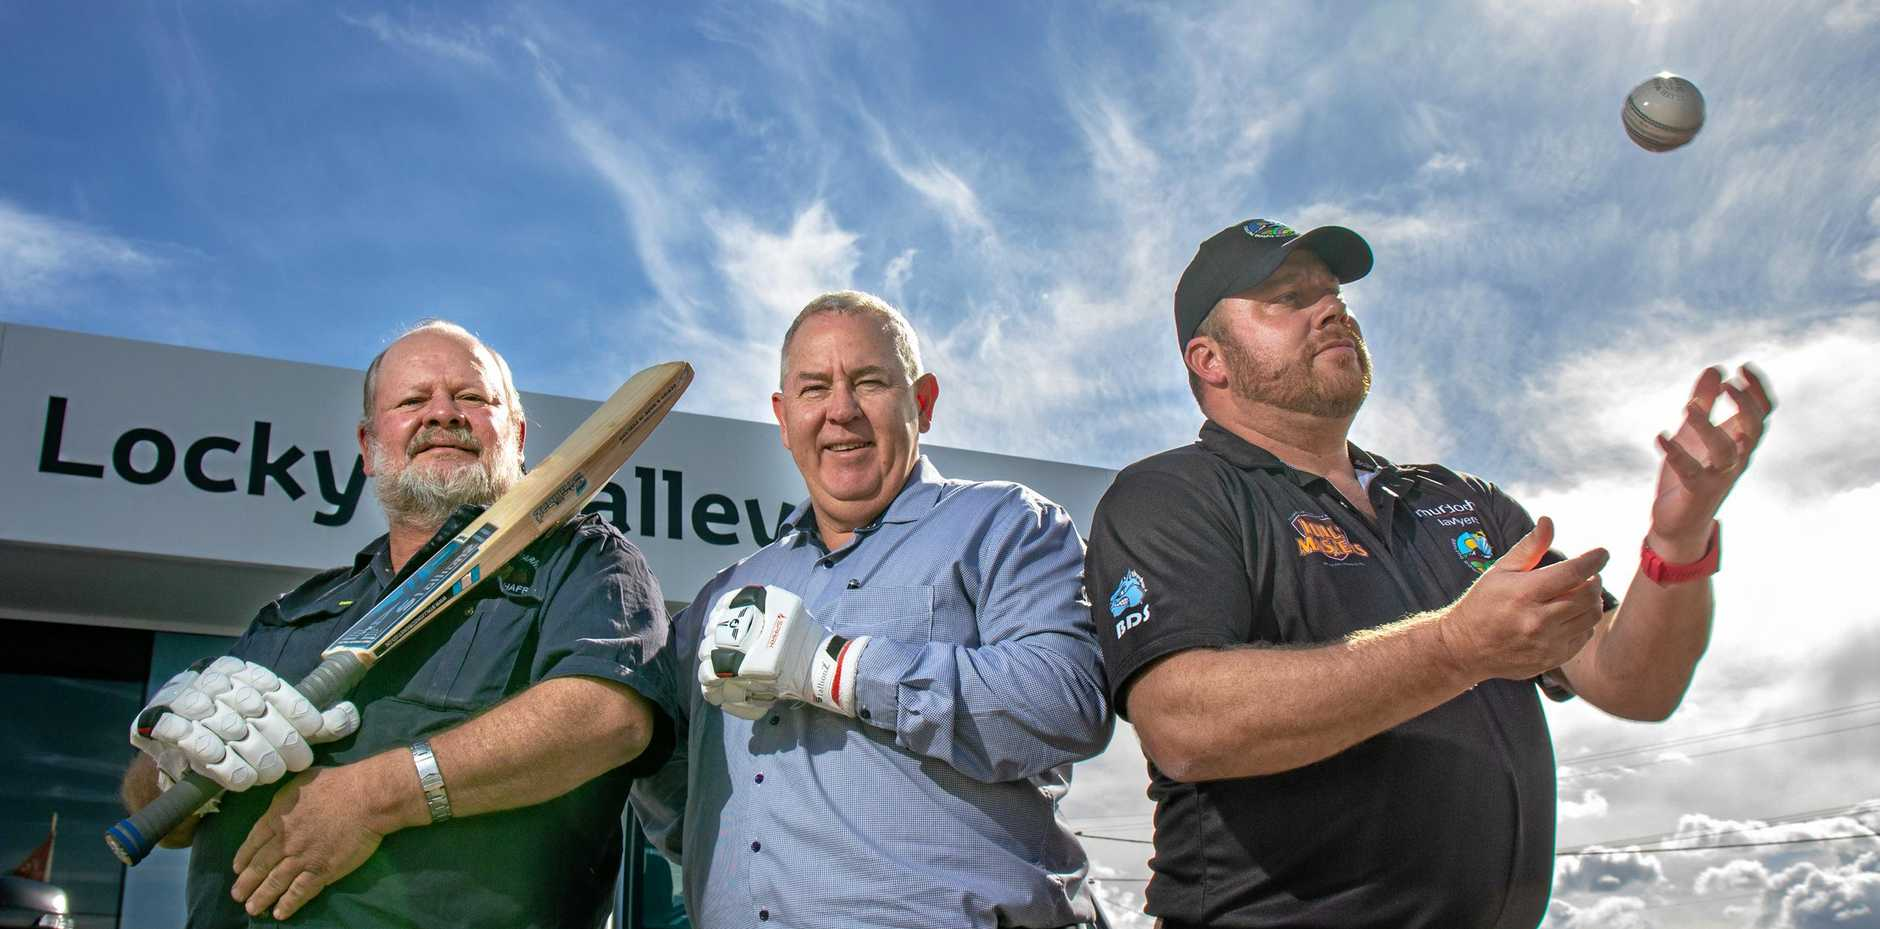 READY TO GO: Valley Raptors T20 team co-owners Lance Pollock and Ian Obrien with Bush Bash League organiser Kent Reimers. The tournament kicks off in September.